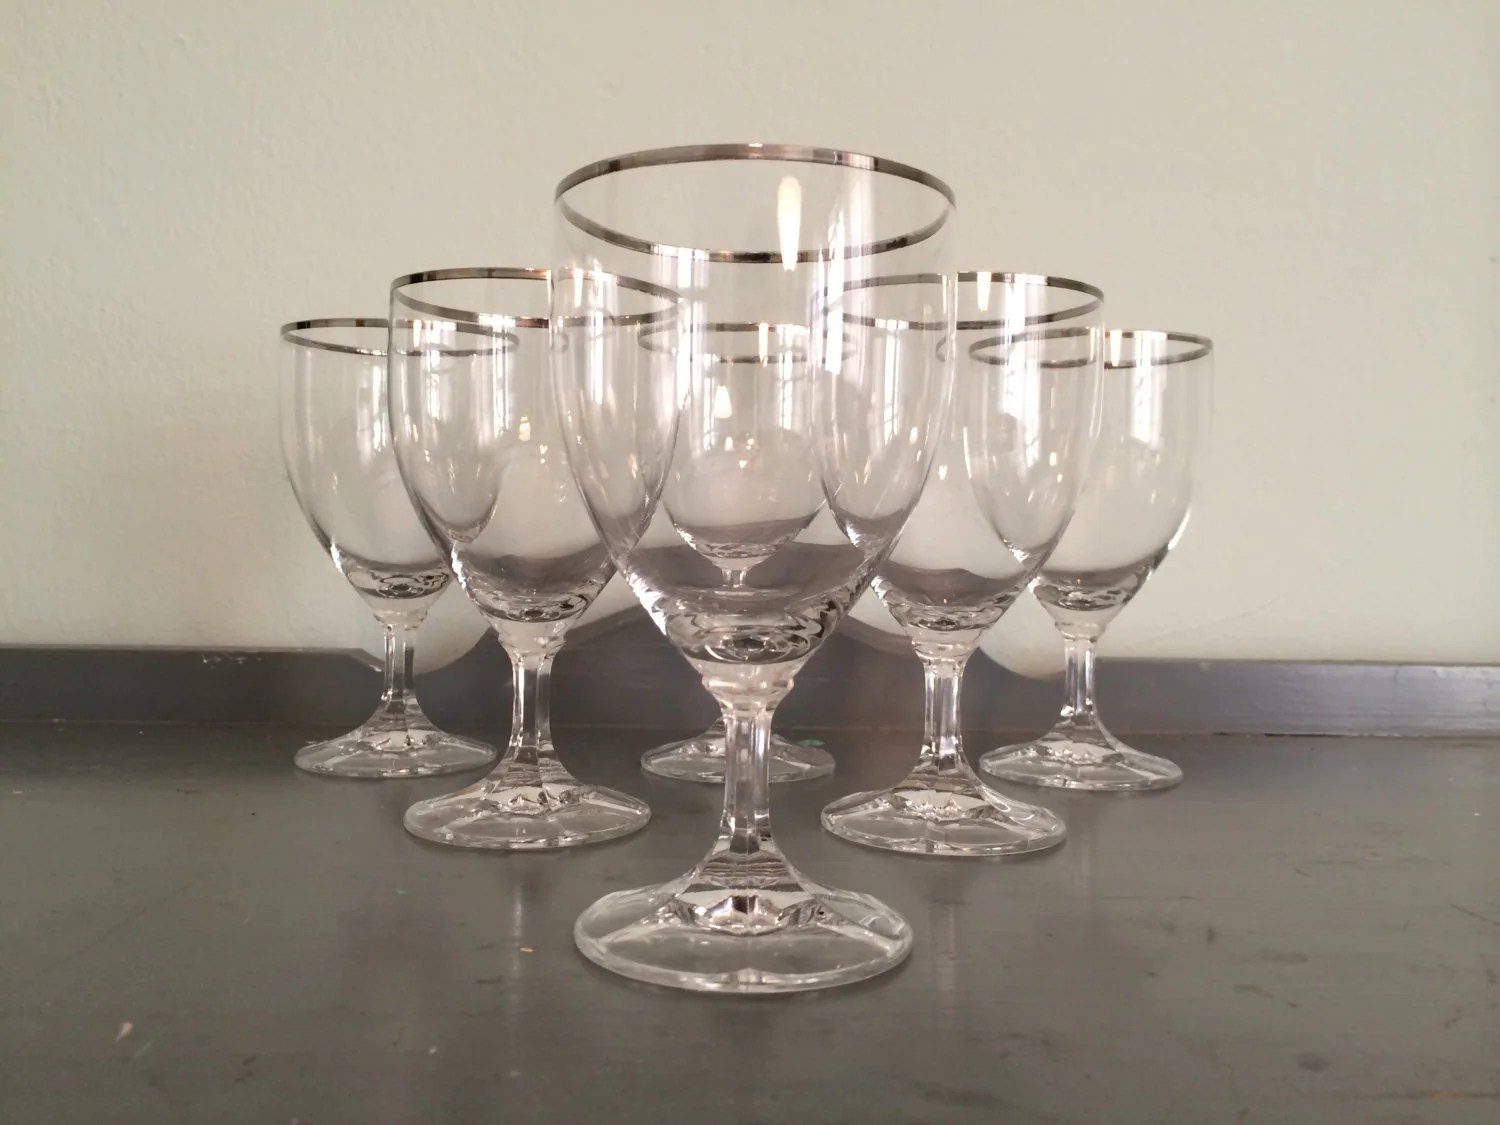 Large Crystal Wine Glasses Six Large Crystal Wine Glasses With Silver Rim Made In West